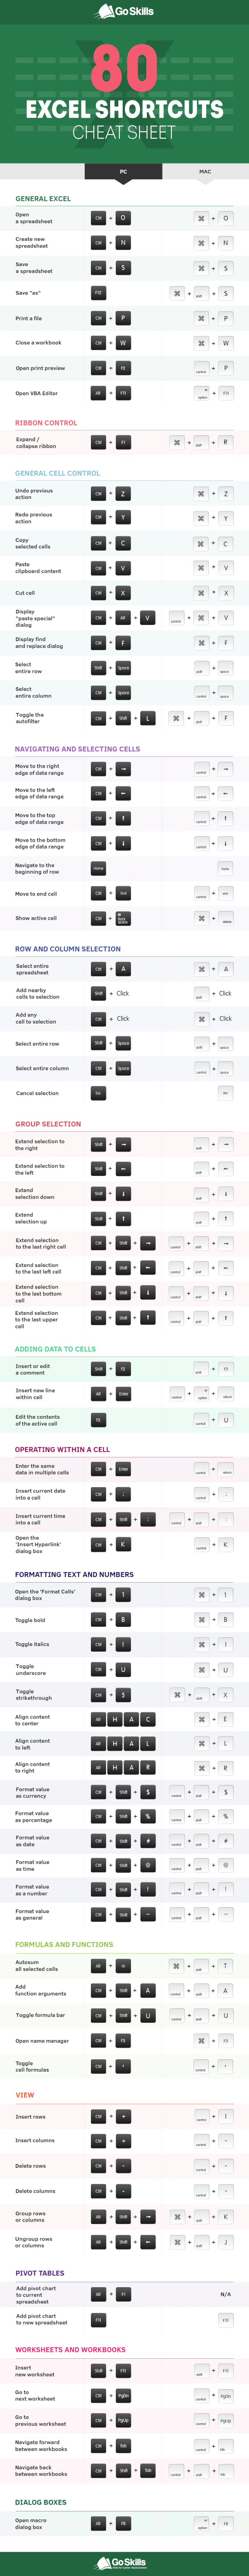 The Top 80 Excel Keyboard Shortcuts Excel Shortcuts Keyboard Shortcuts Excel